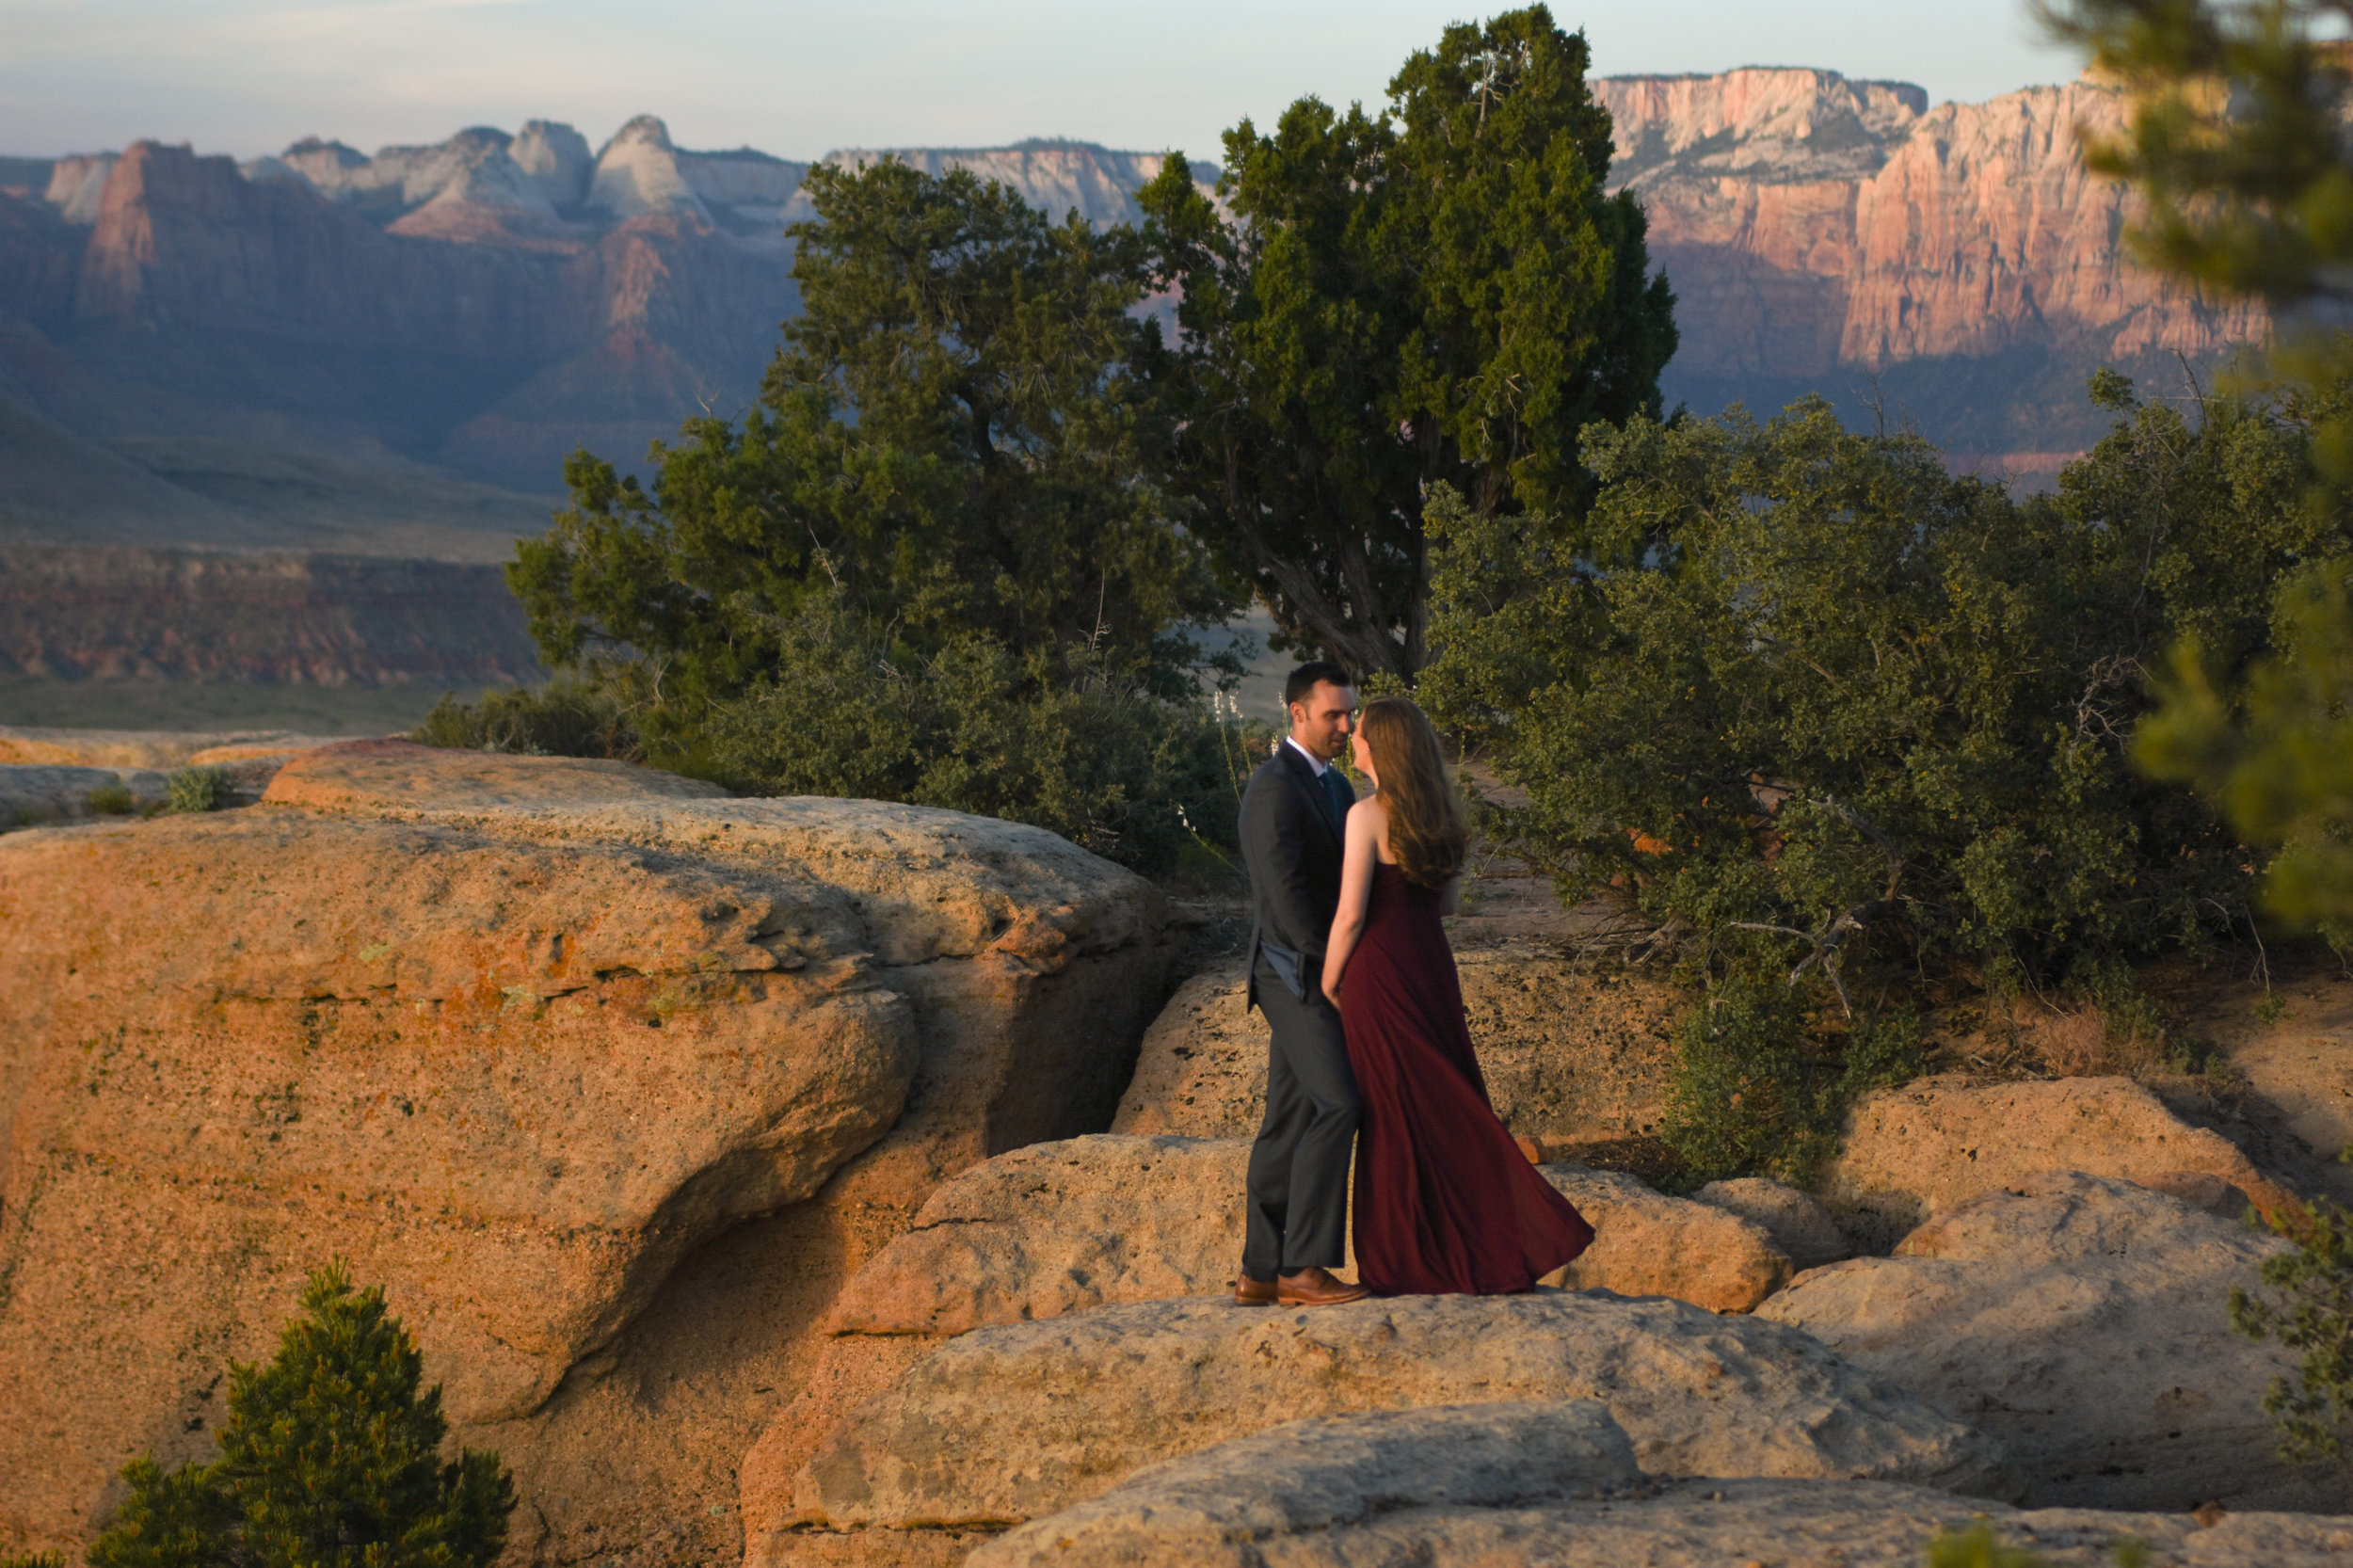 zionnationalparkengagementphotos (32 of 53).jpg